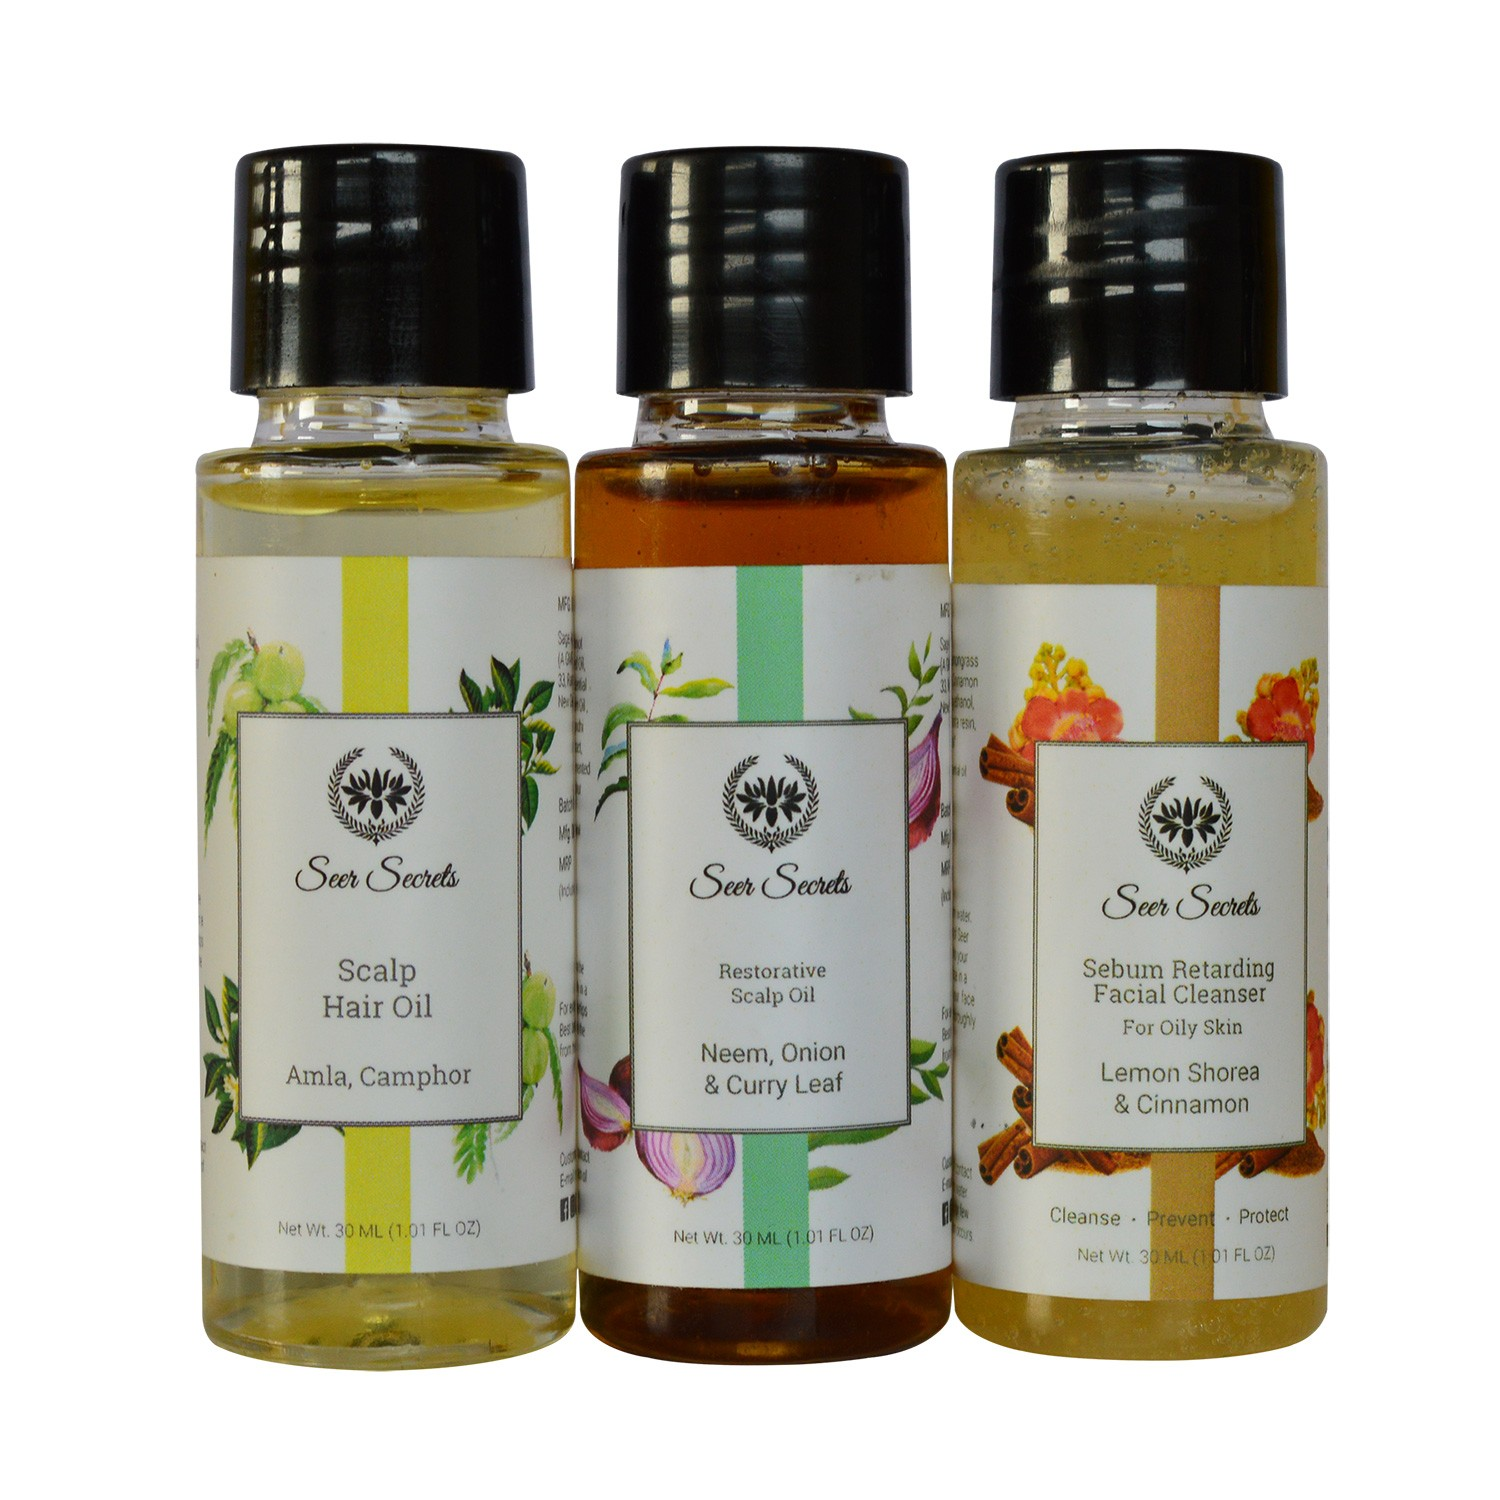 Neem, Onion & Curry Leaf Scalp Oil + Amla, Camphor Scalp Hair Oil + Lemon, Shorea and Cinnamon Facial Cleanser